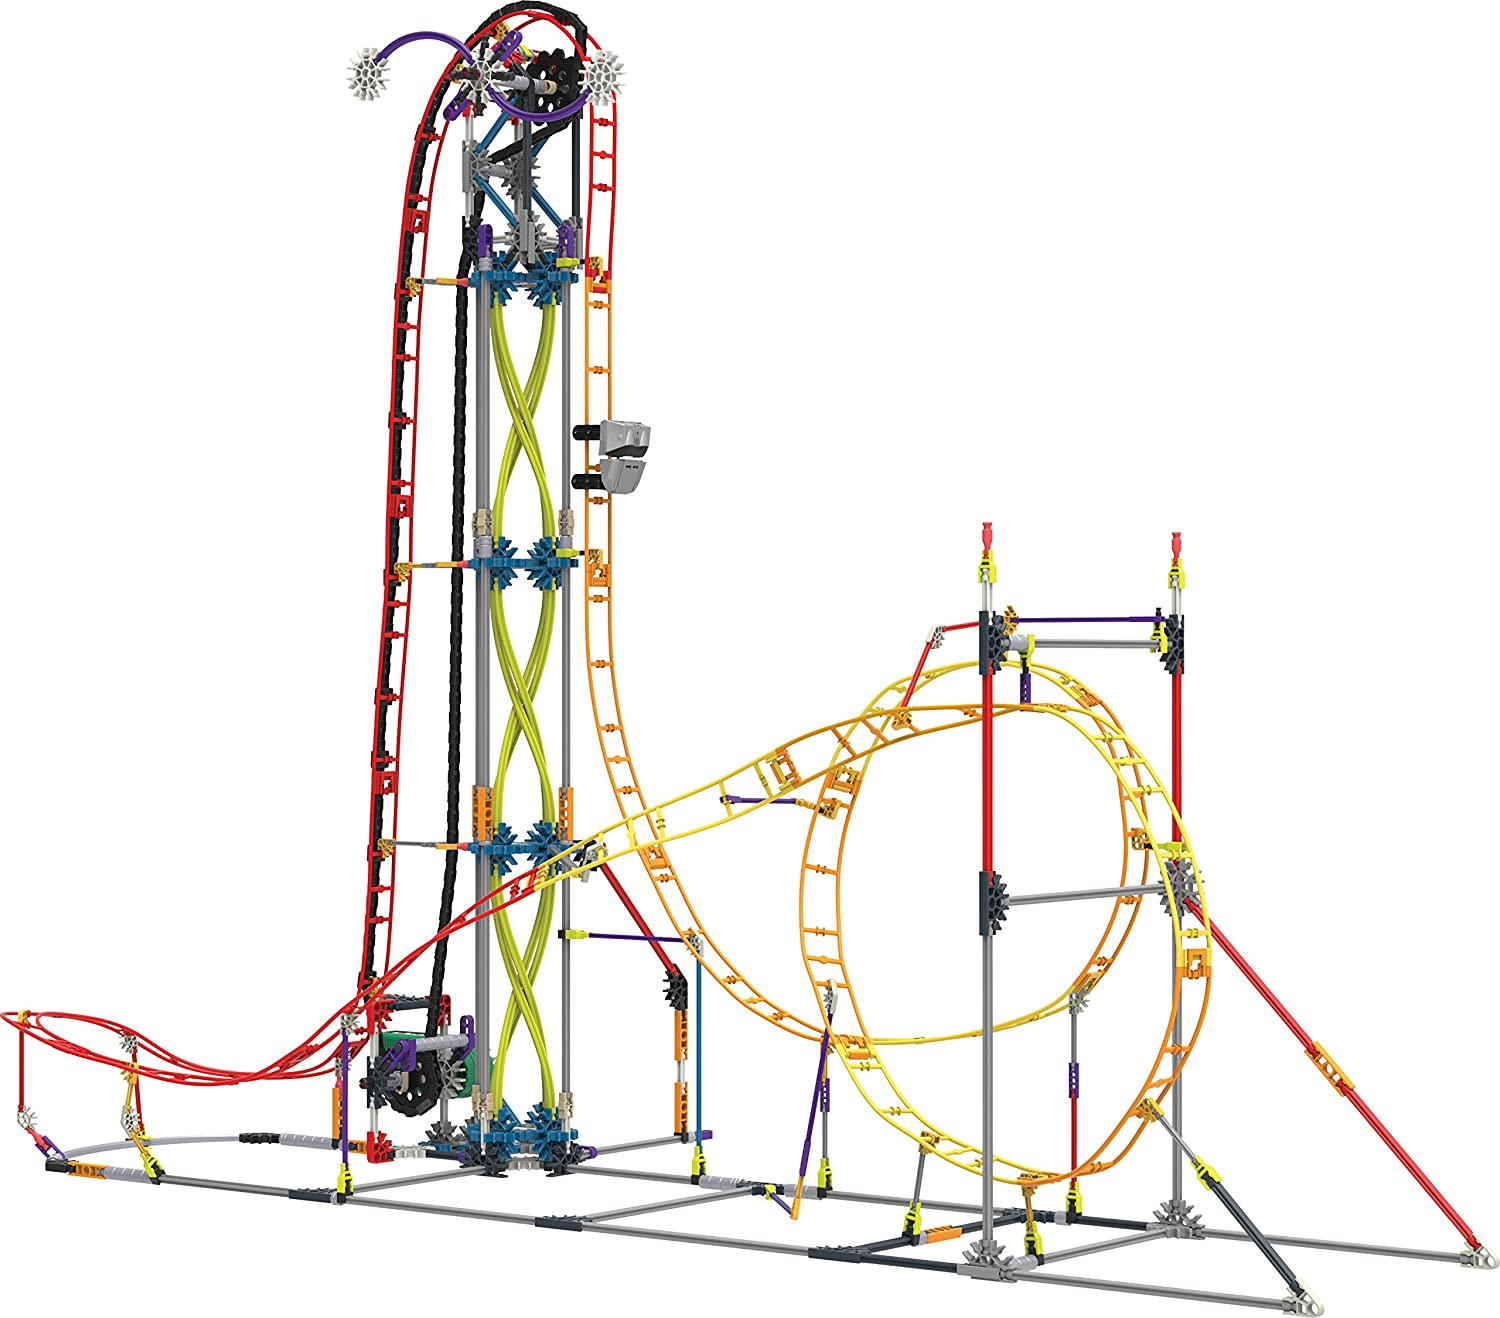 How to build a roller coaster